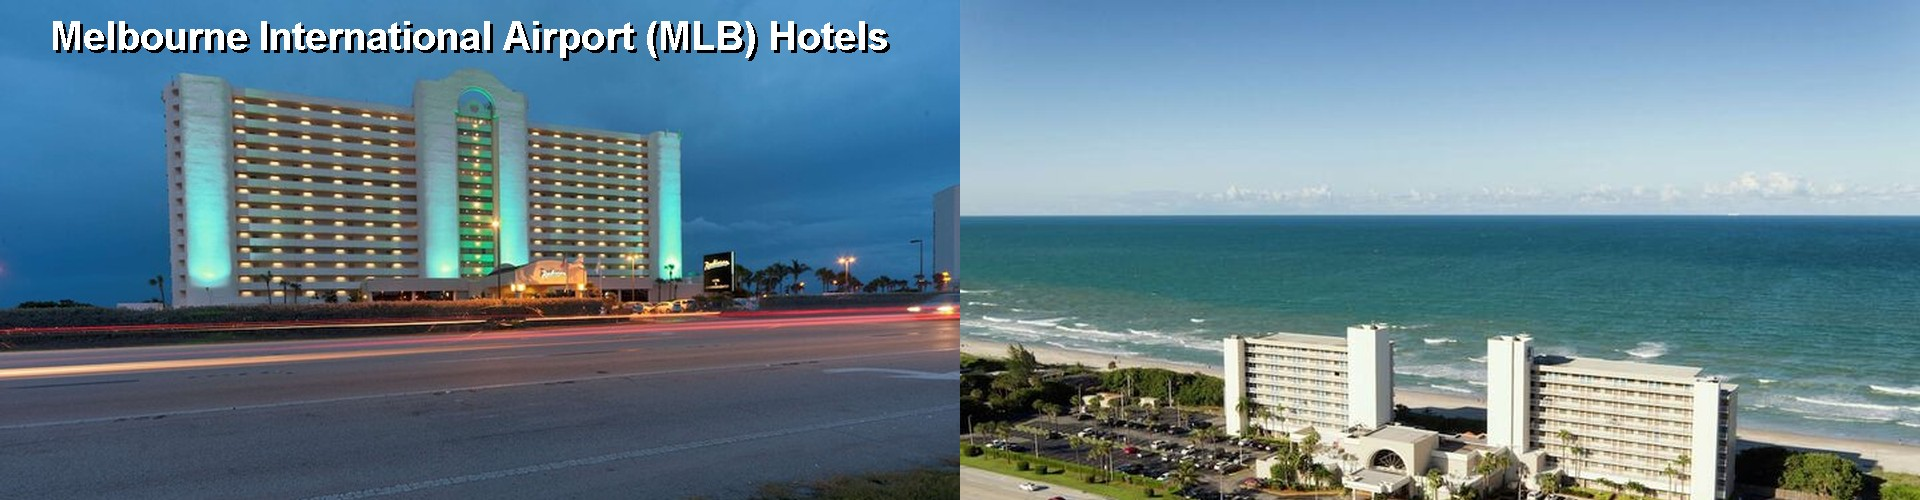 5 Best Hotels near Melbourne International Airport (MLB)